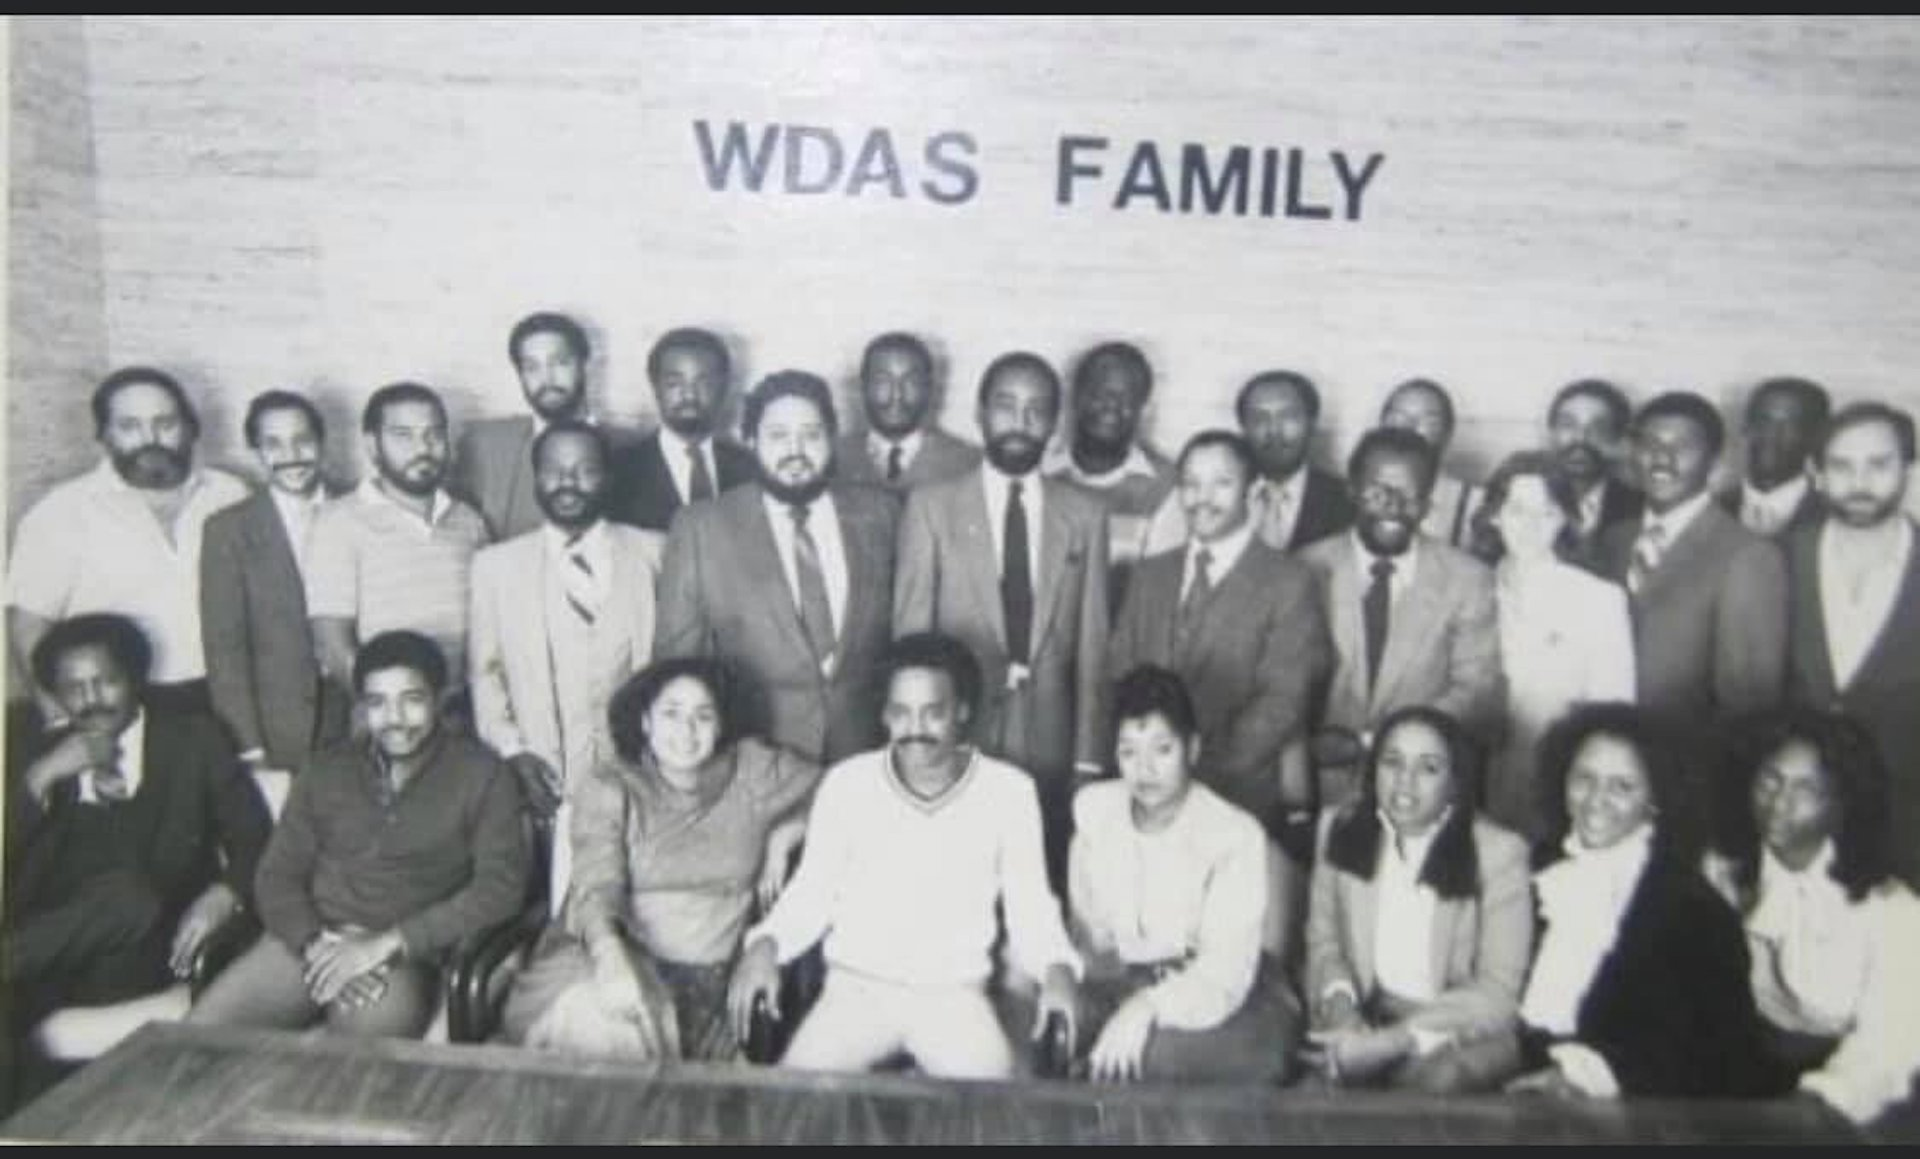 In this archival photo at WDAS, Tony Brown sits in the front row fourth from the left with Dyana Williams to his immediate left. Cody Anderson stands immediately behind Brown. Jerry Wells sits third from the right.